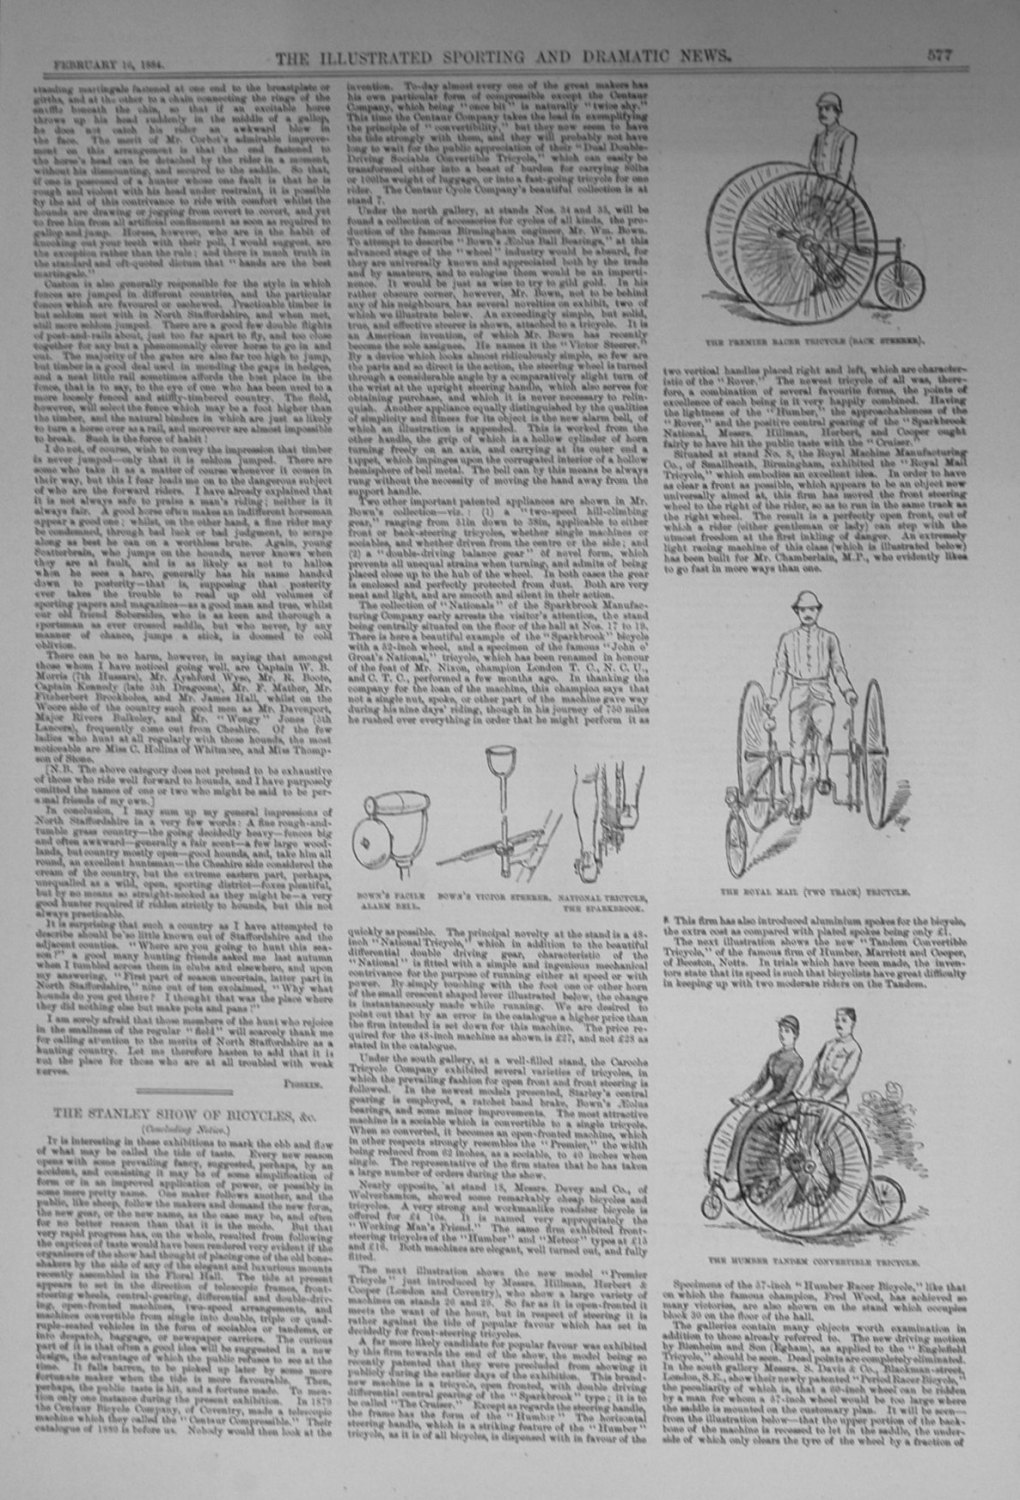 The Stanley Show of Bicycles. 1884